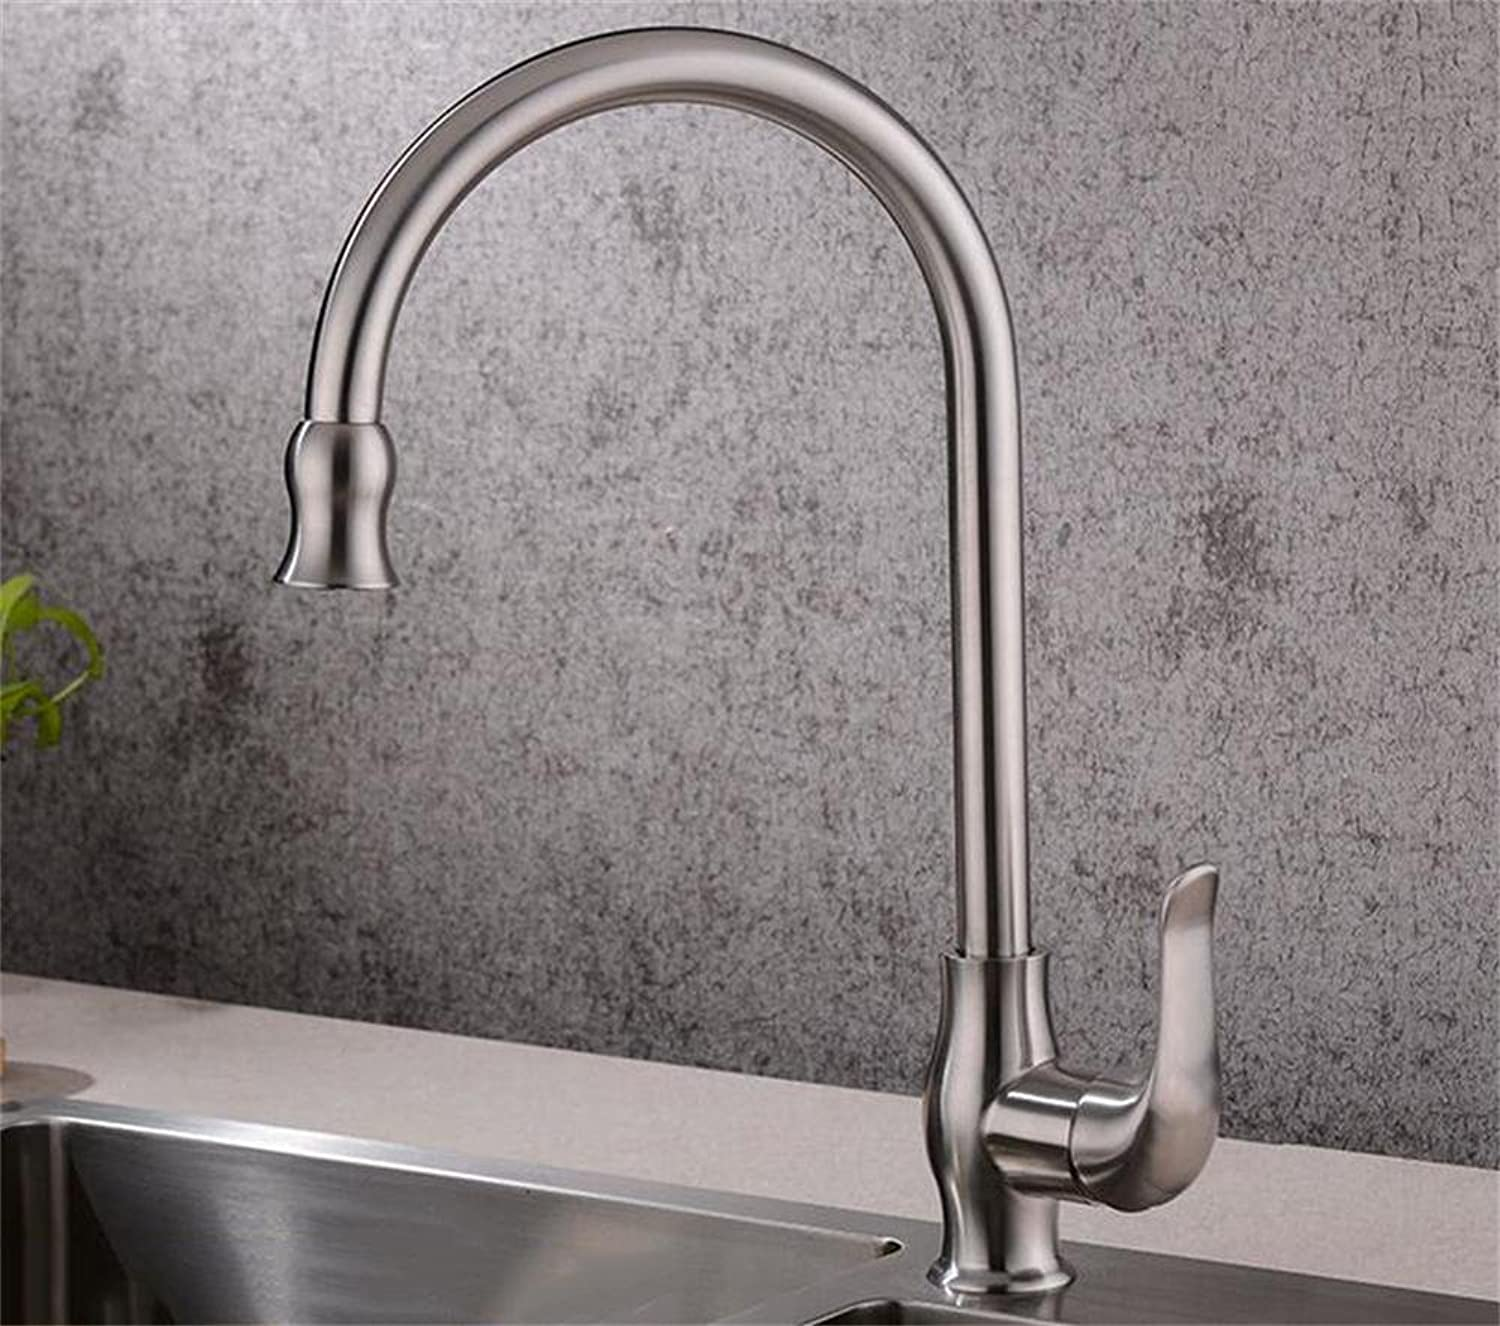 TOYM- 304 Stainless Steel Kitchen Faucet Hot And Cold Water Single Hole redary Kitchen Faucet